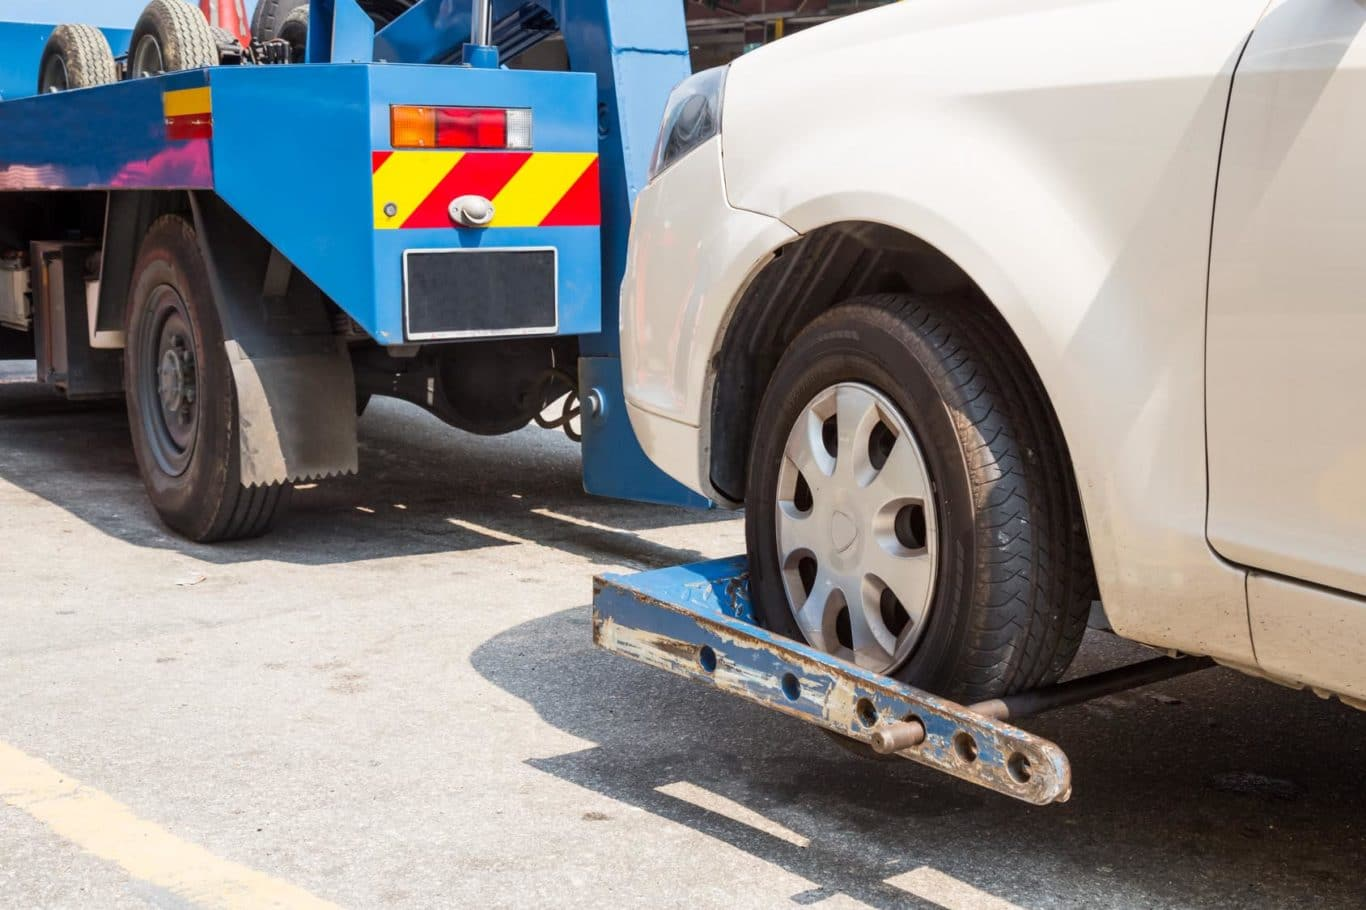 Enniskerry expert Towing And Recovery Dublin services